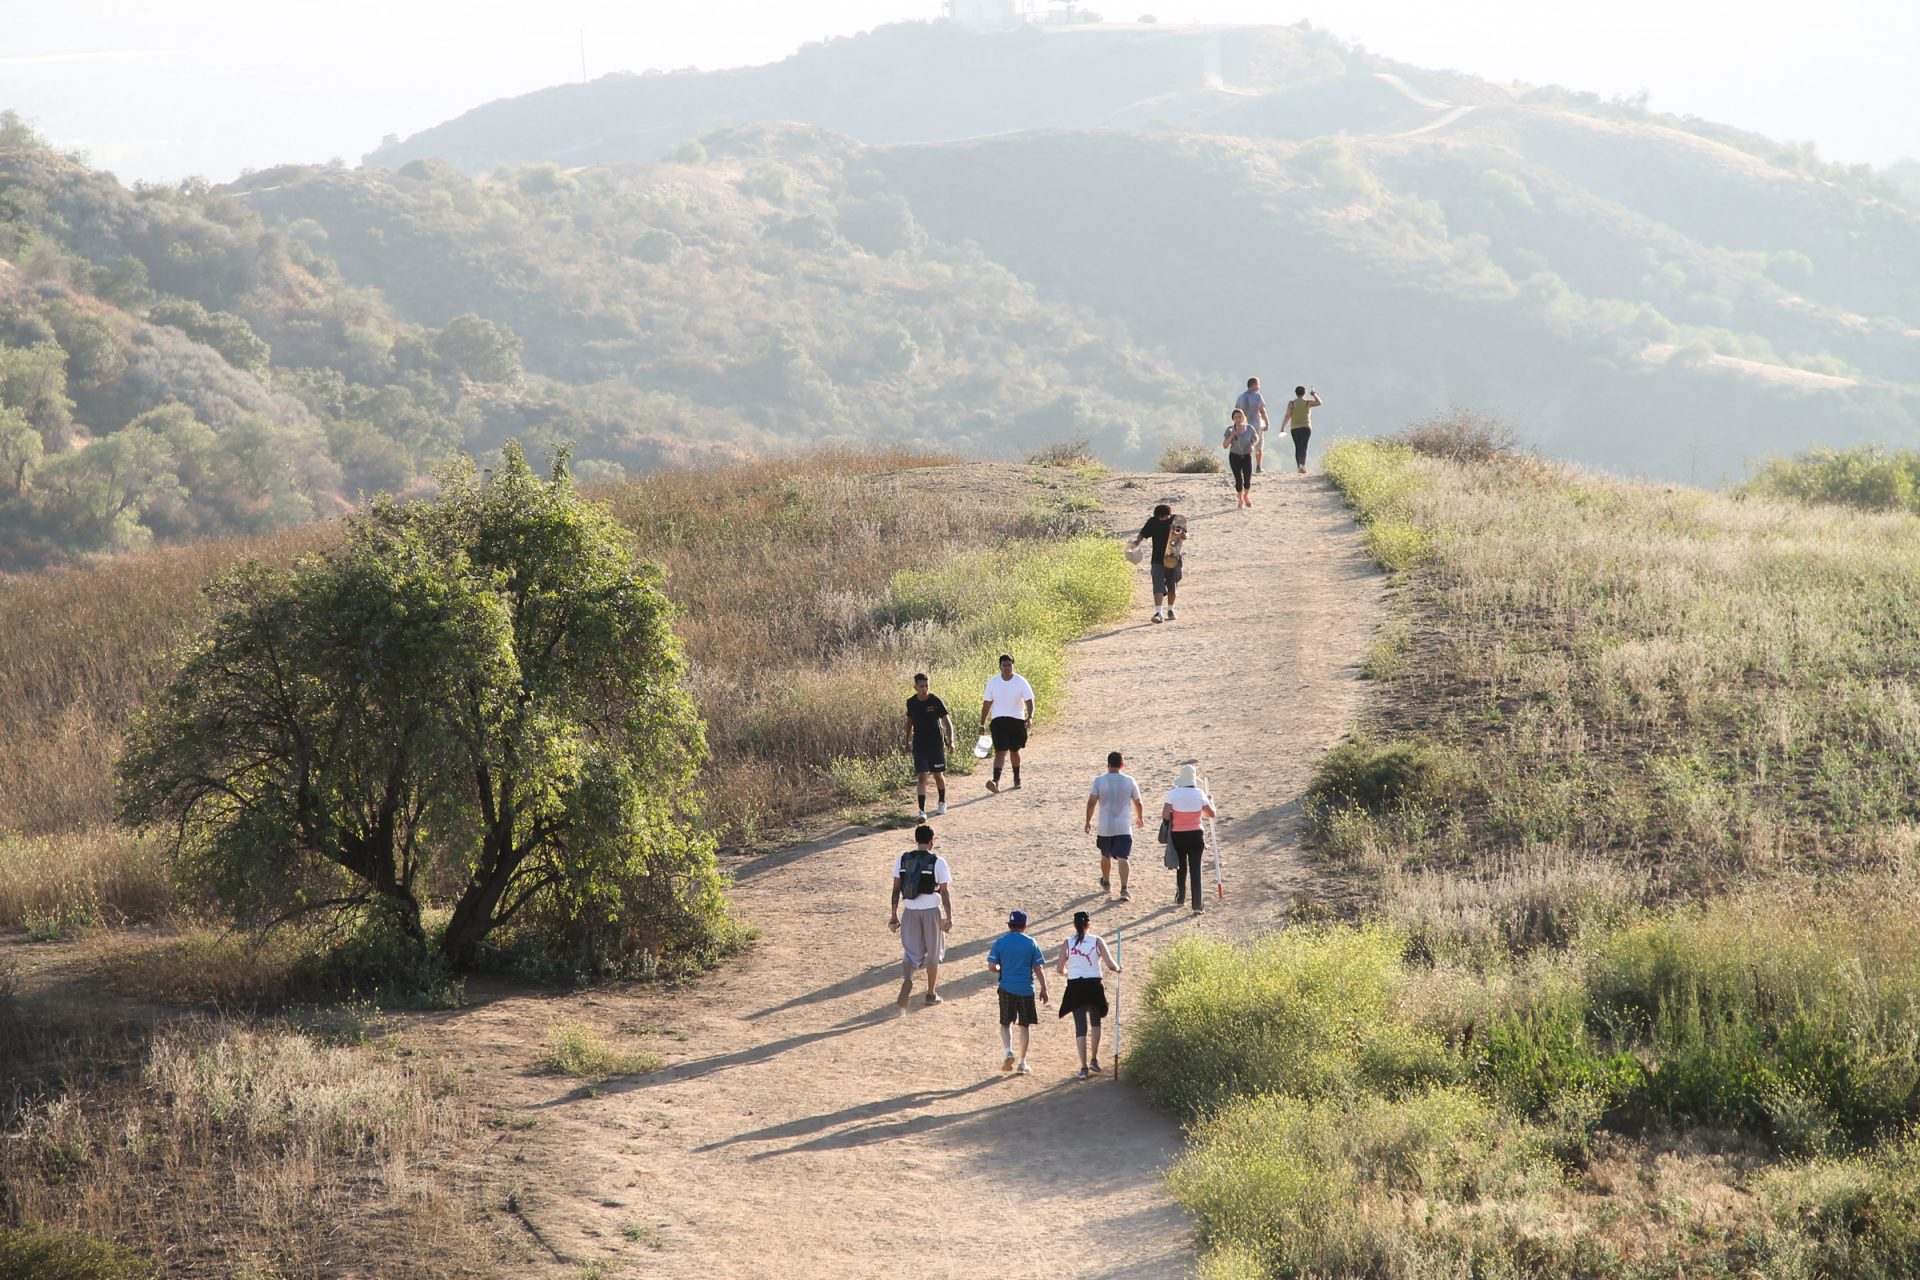 People Walking on Dry Dirt Trail Over Hill